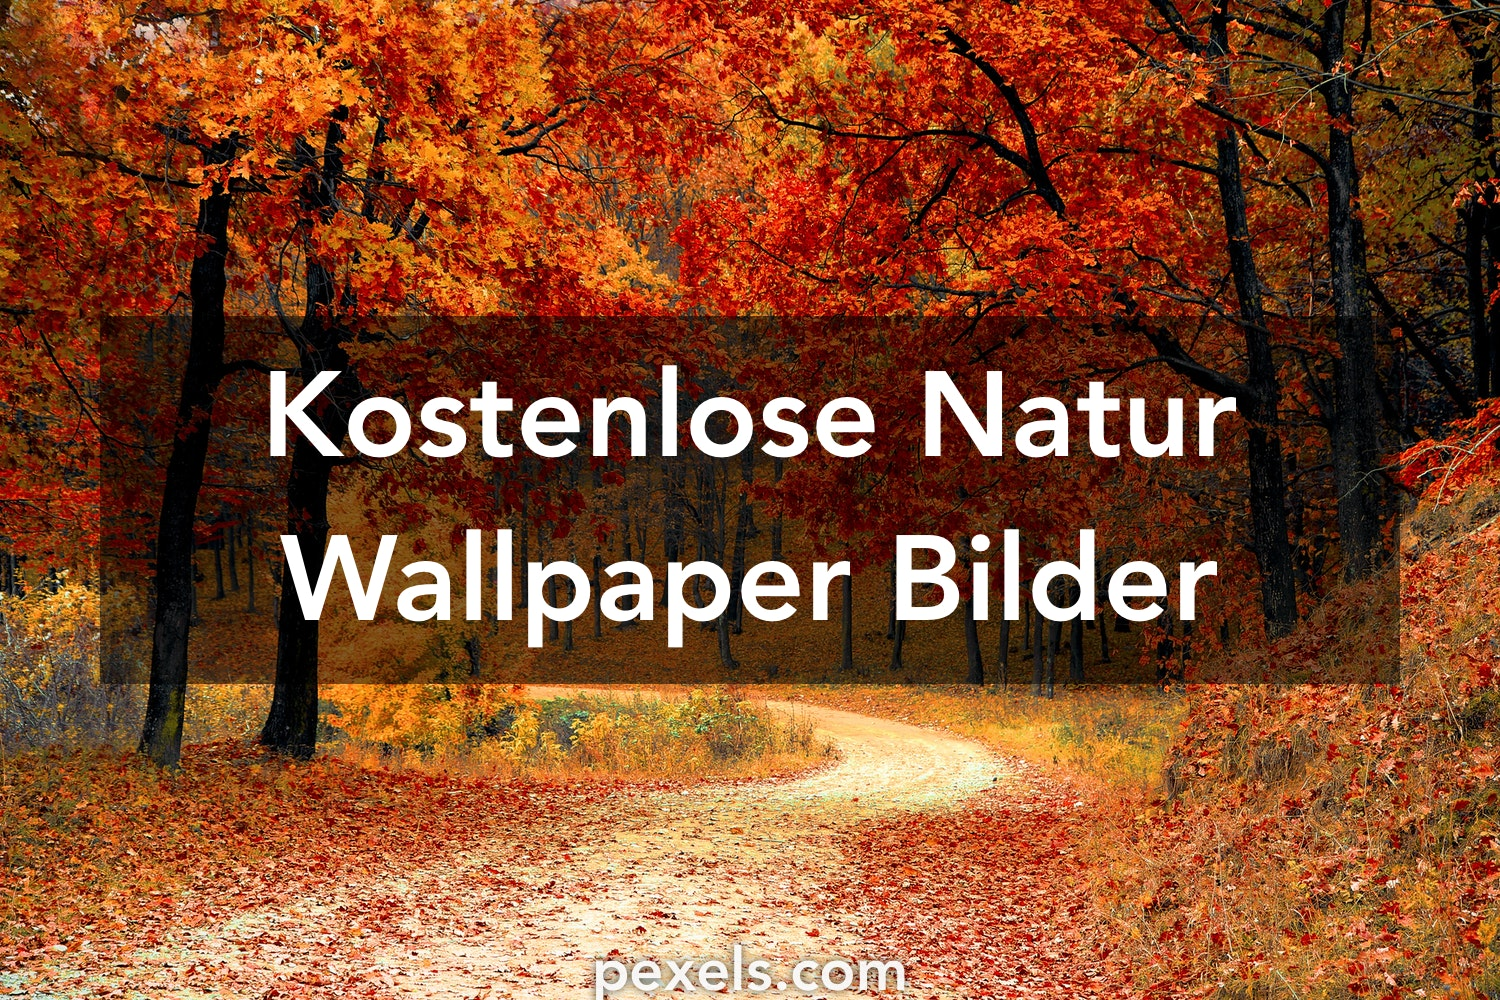 natur wallpaper hintergrundbilder pexels kostenlose stock fotos. Black Bedroom Furniture Sets. Home Design Ideas